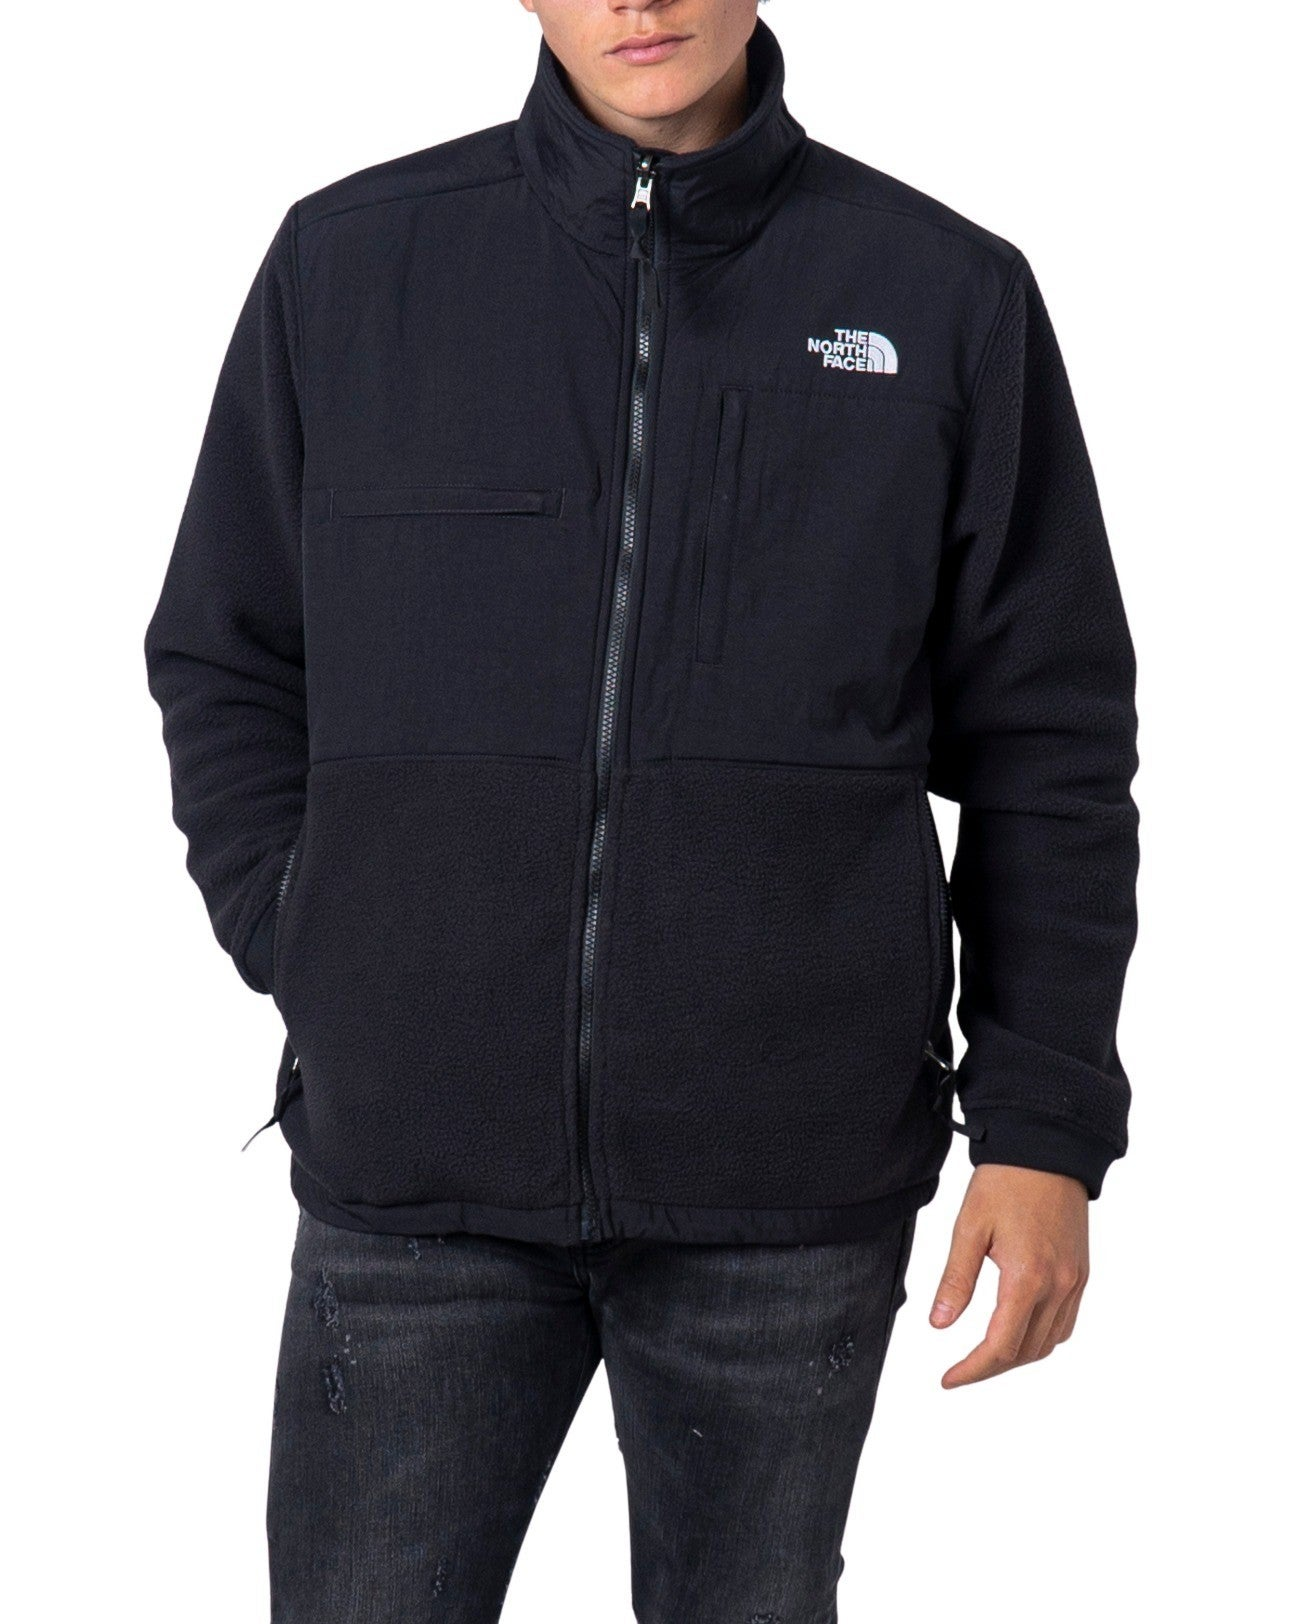 The North Face Men's Jacket In Black